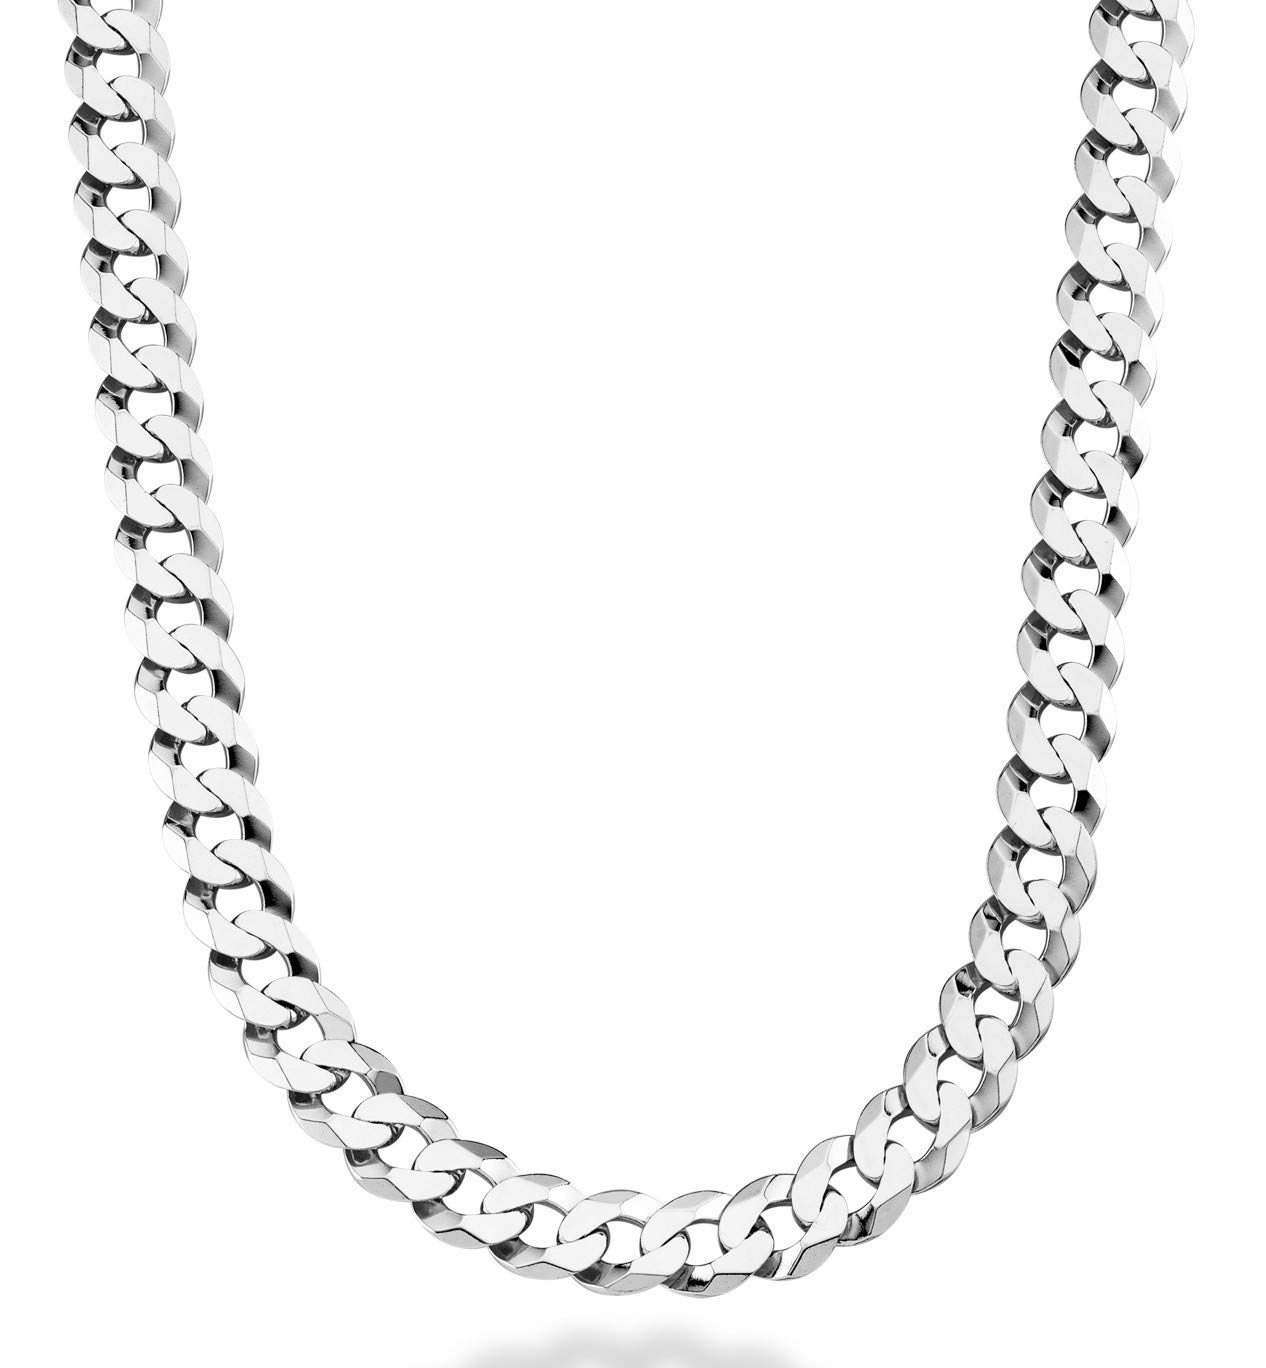 MiaBella Solid 925 Sterling Silver Italian 9mm Solid Diamond-Cut Cuban Link Curb Chain Necklace for Men, 18''-20''-22''-24''-26''-30''(24)